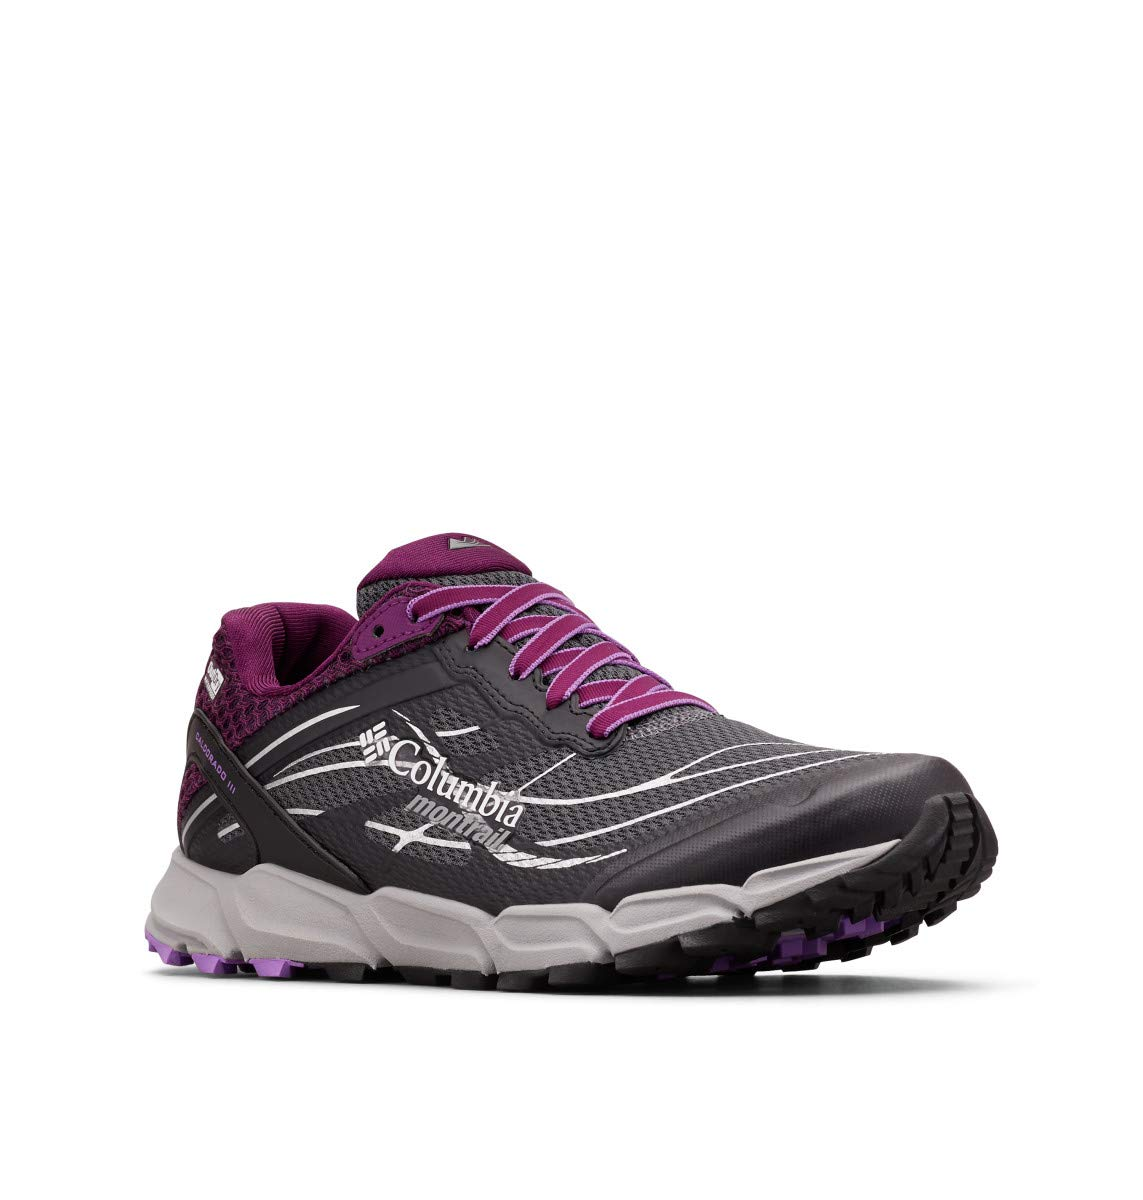 Columbia Montrail Women's CALDORADO III Outdry Sneaker, Graphite/Crown Jewel, 8.5 Regular US by Columbia Montrail